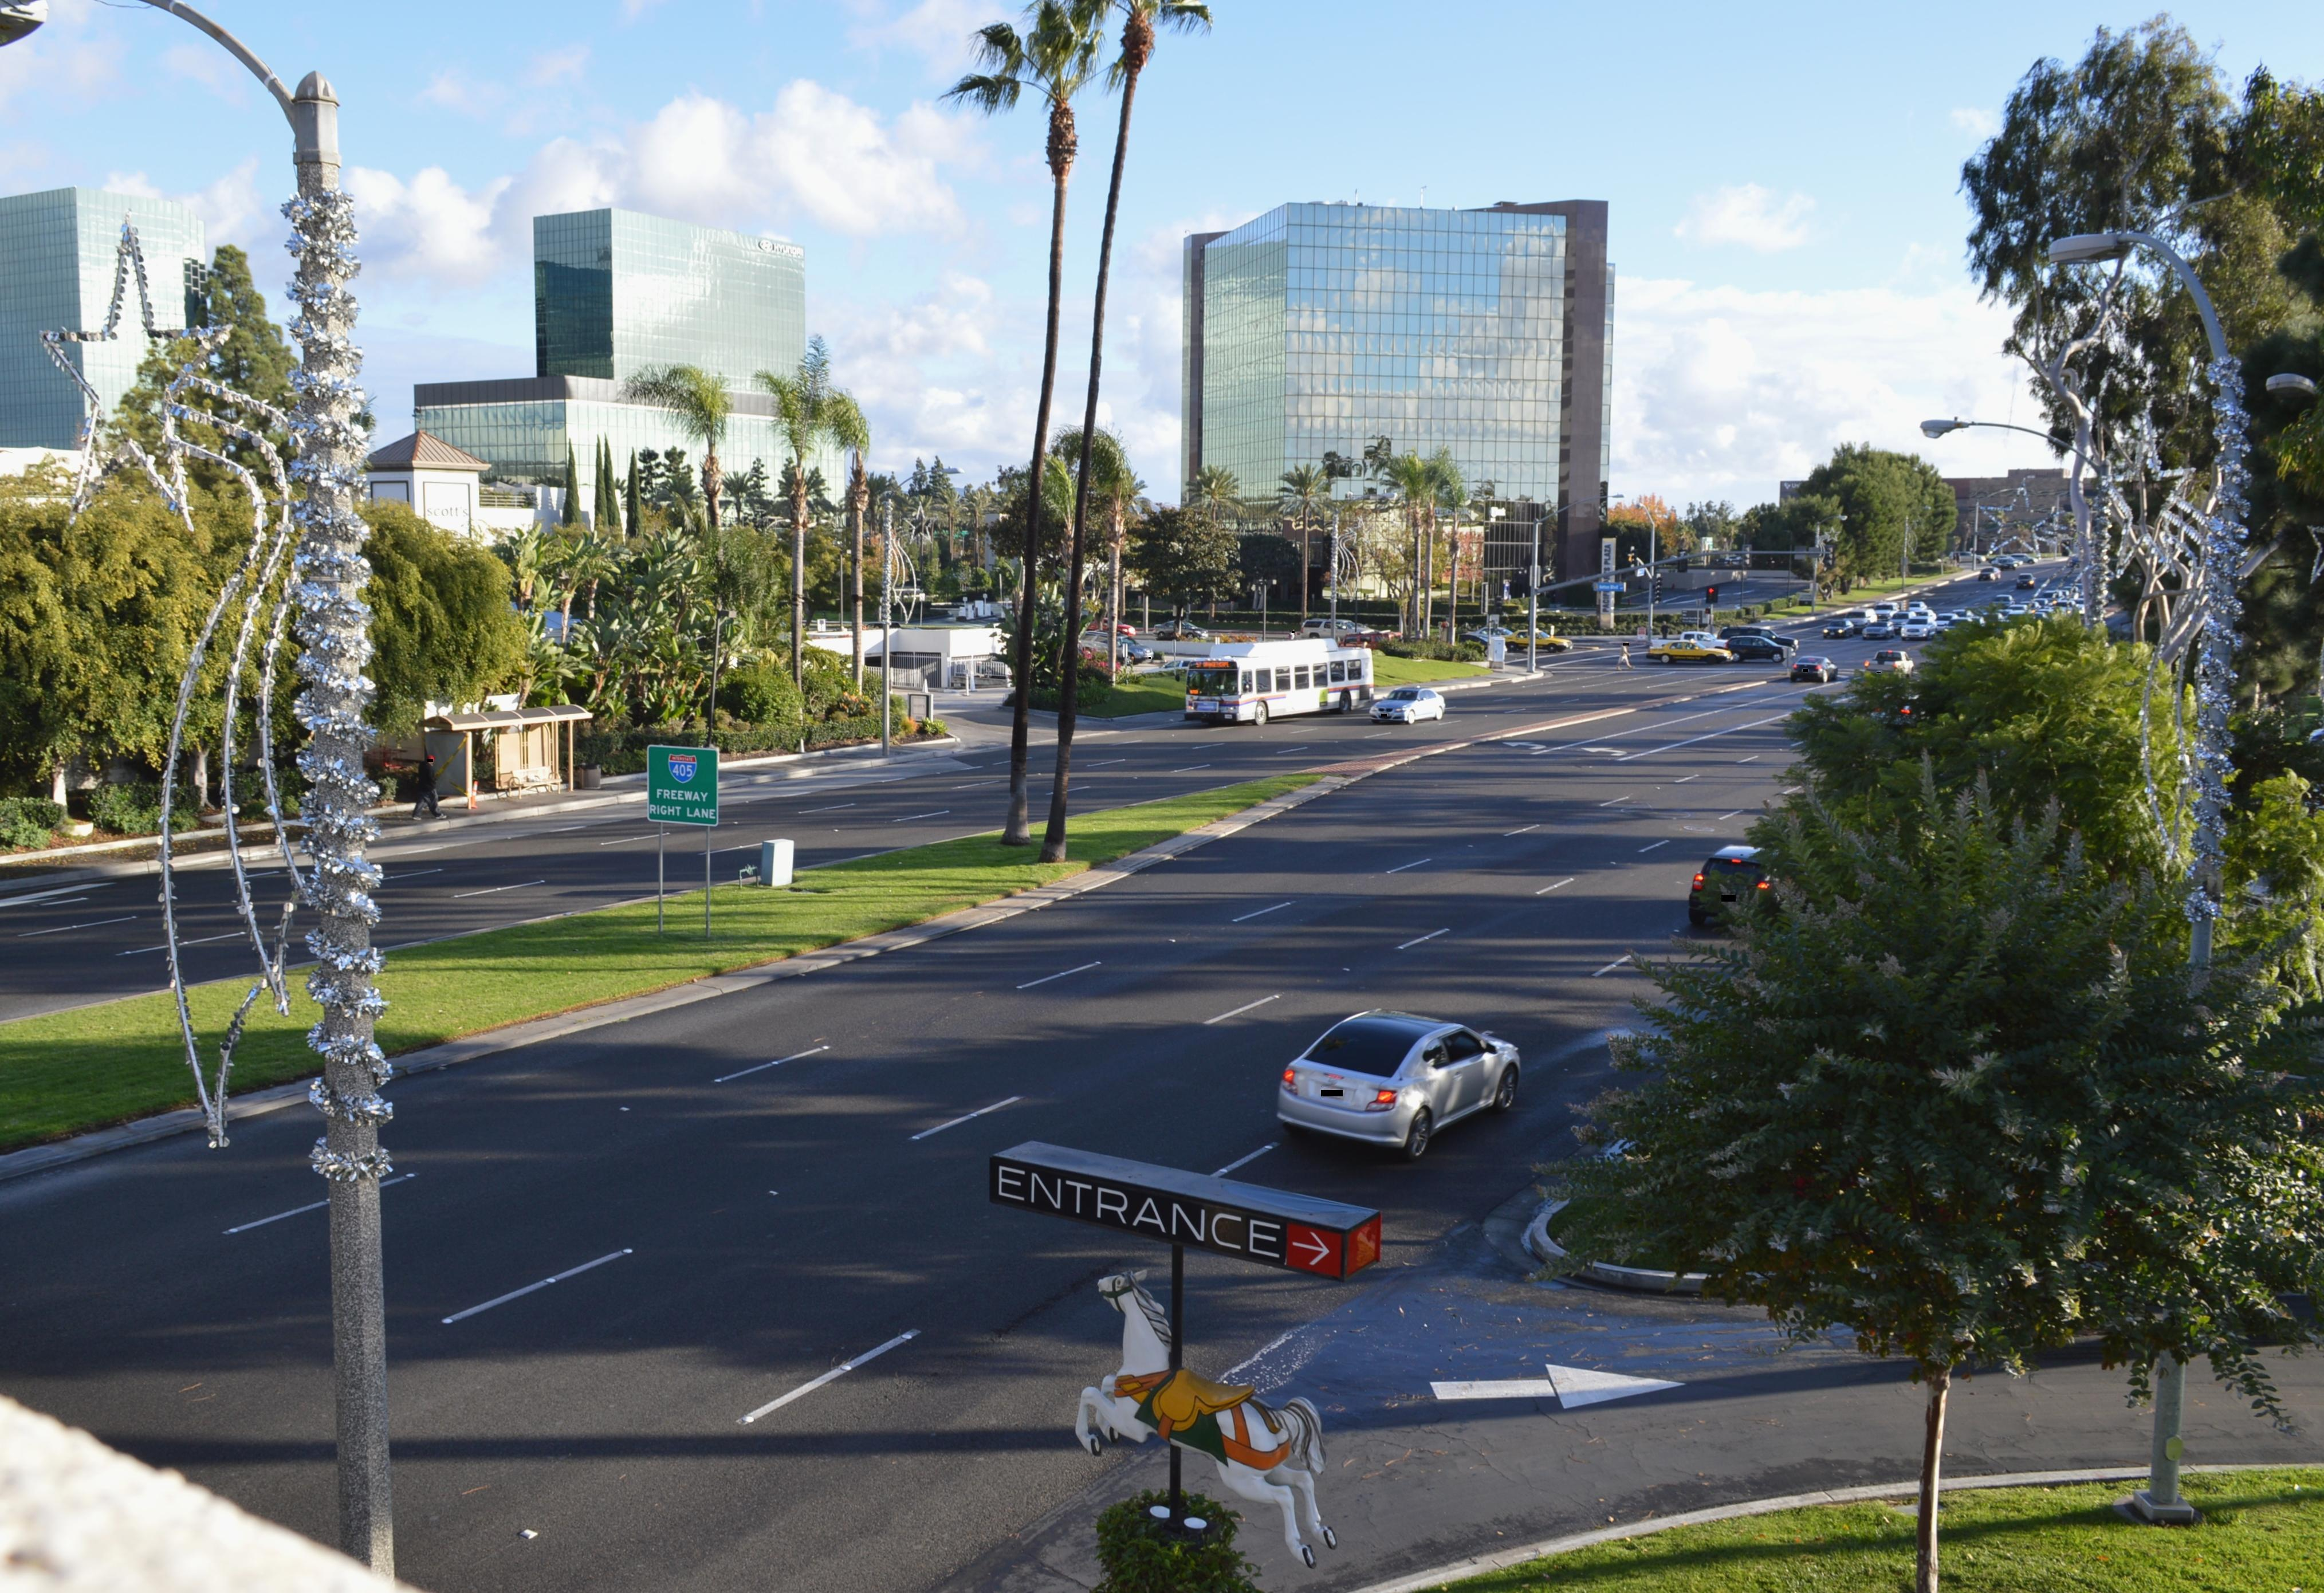 Costa Mesa Tourism: TripAdvisor has 24, reviews of Costa Mesa Hotels, Attractions, and Restaurants making it your best Costa Mesa resource.